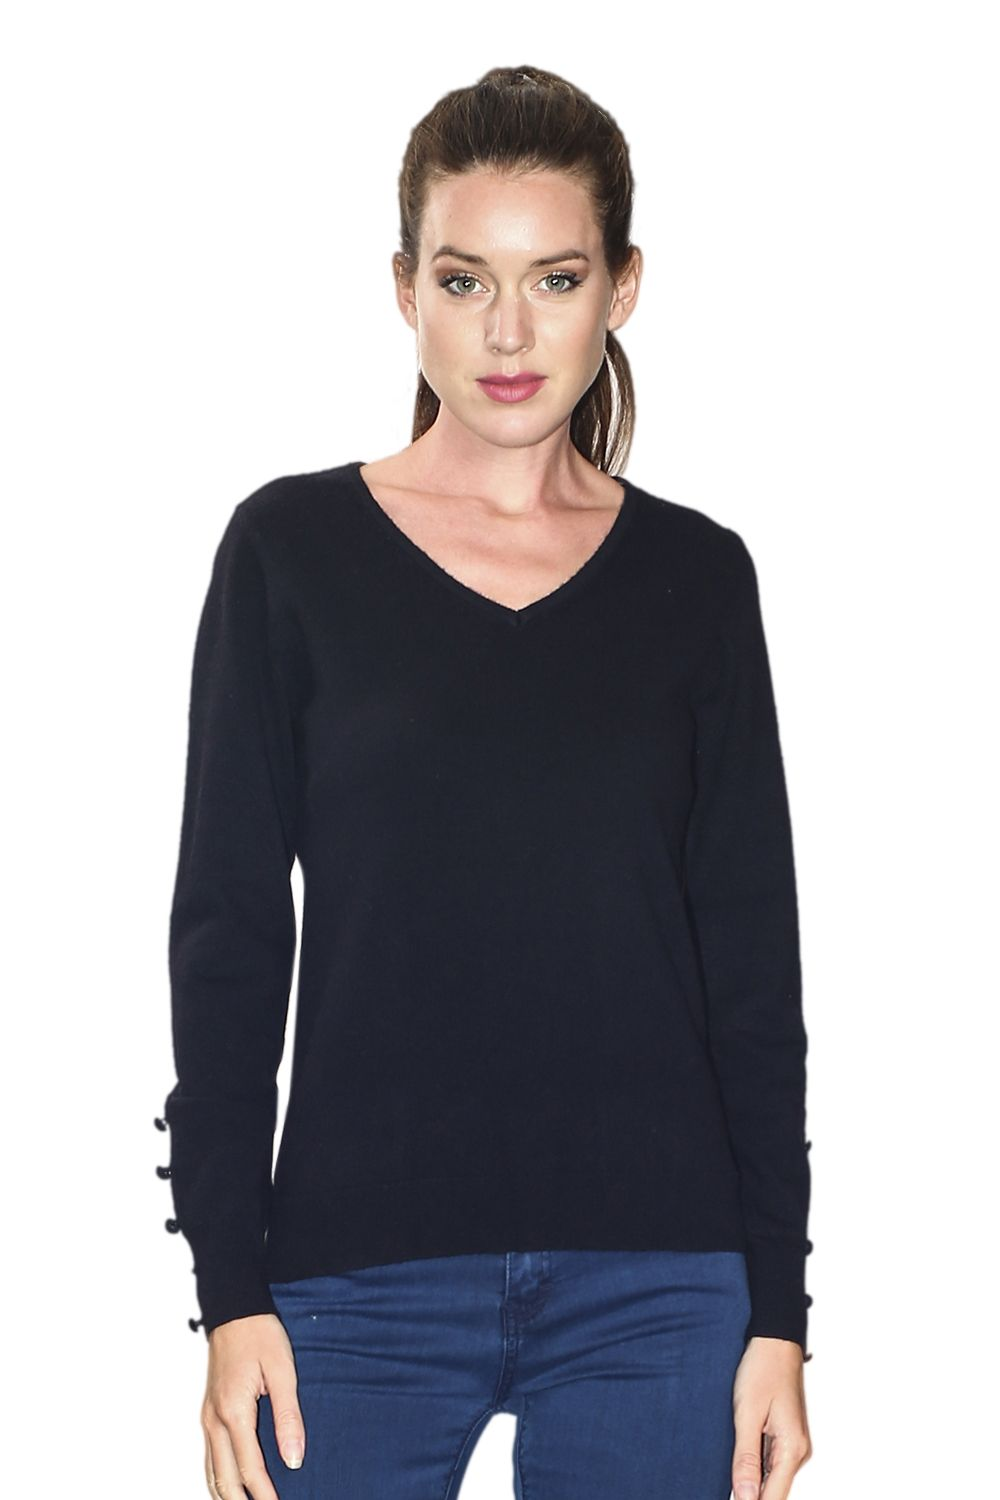 Assuili V-neck Sweater with Buttoned Sleeves in Black